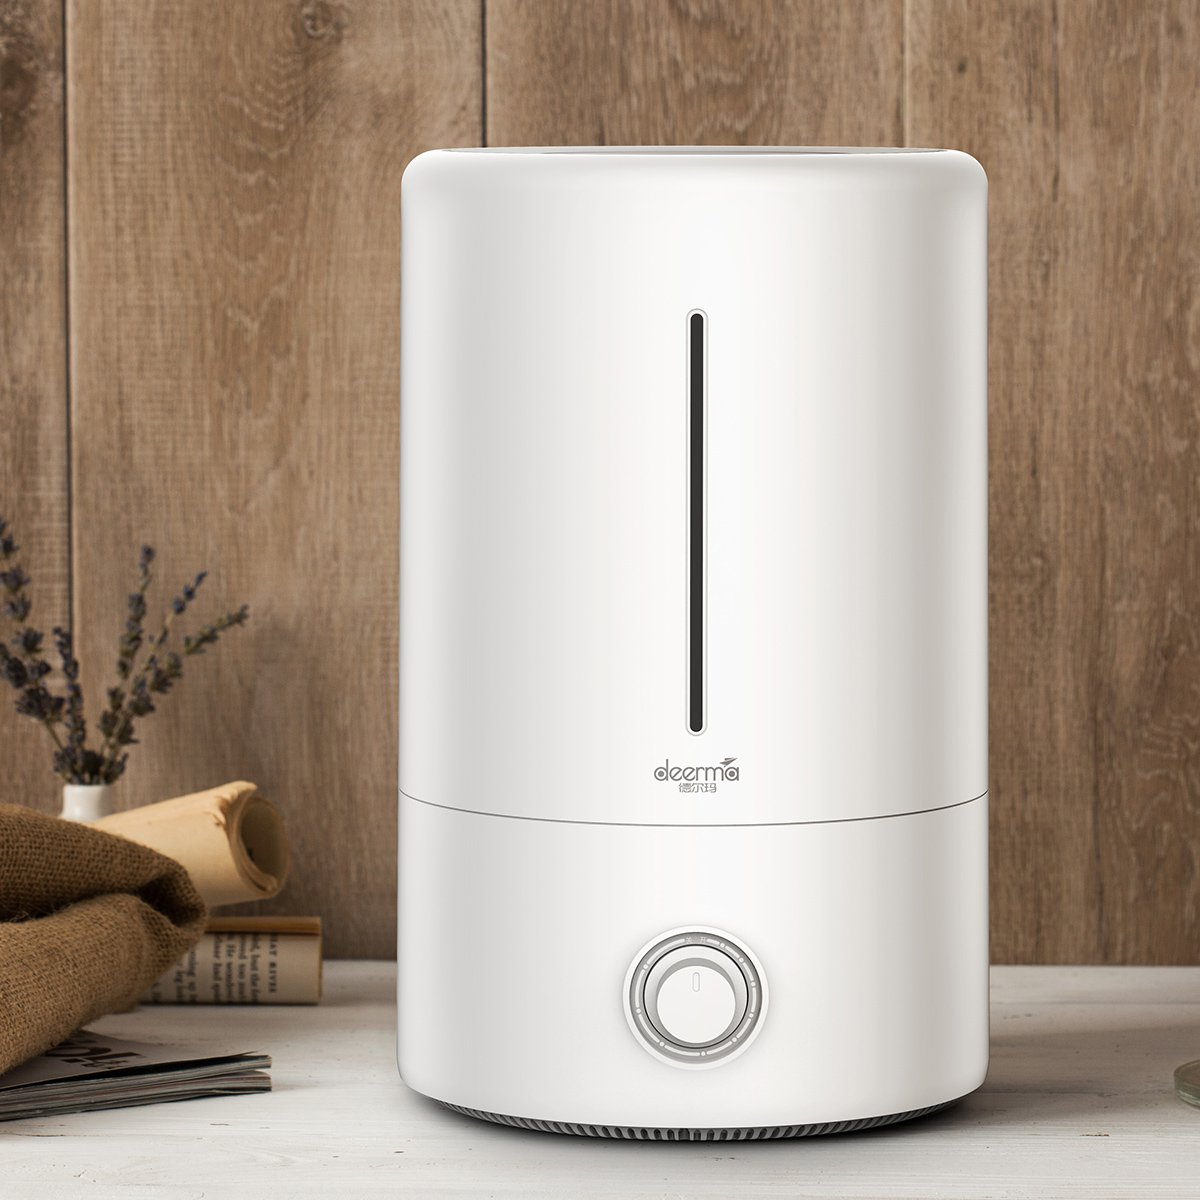 Deerma F628 5L High Capacity Ultrasonic Humidifier/ Aroma Oil/ SG Plug/ 1 Year SG Warranty